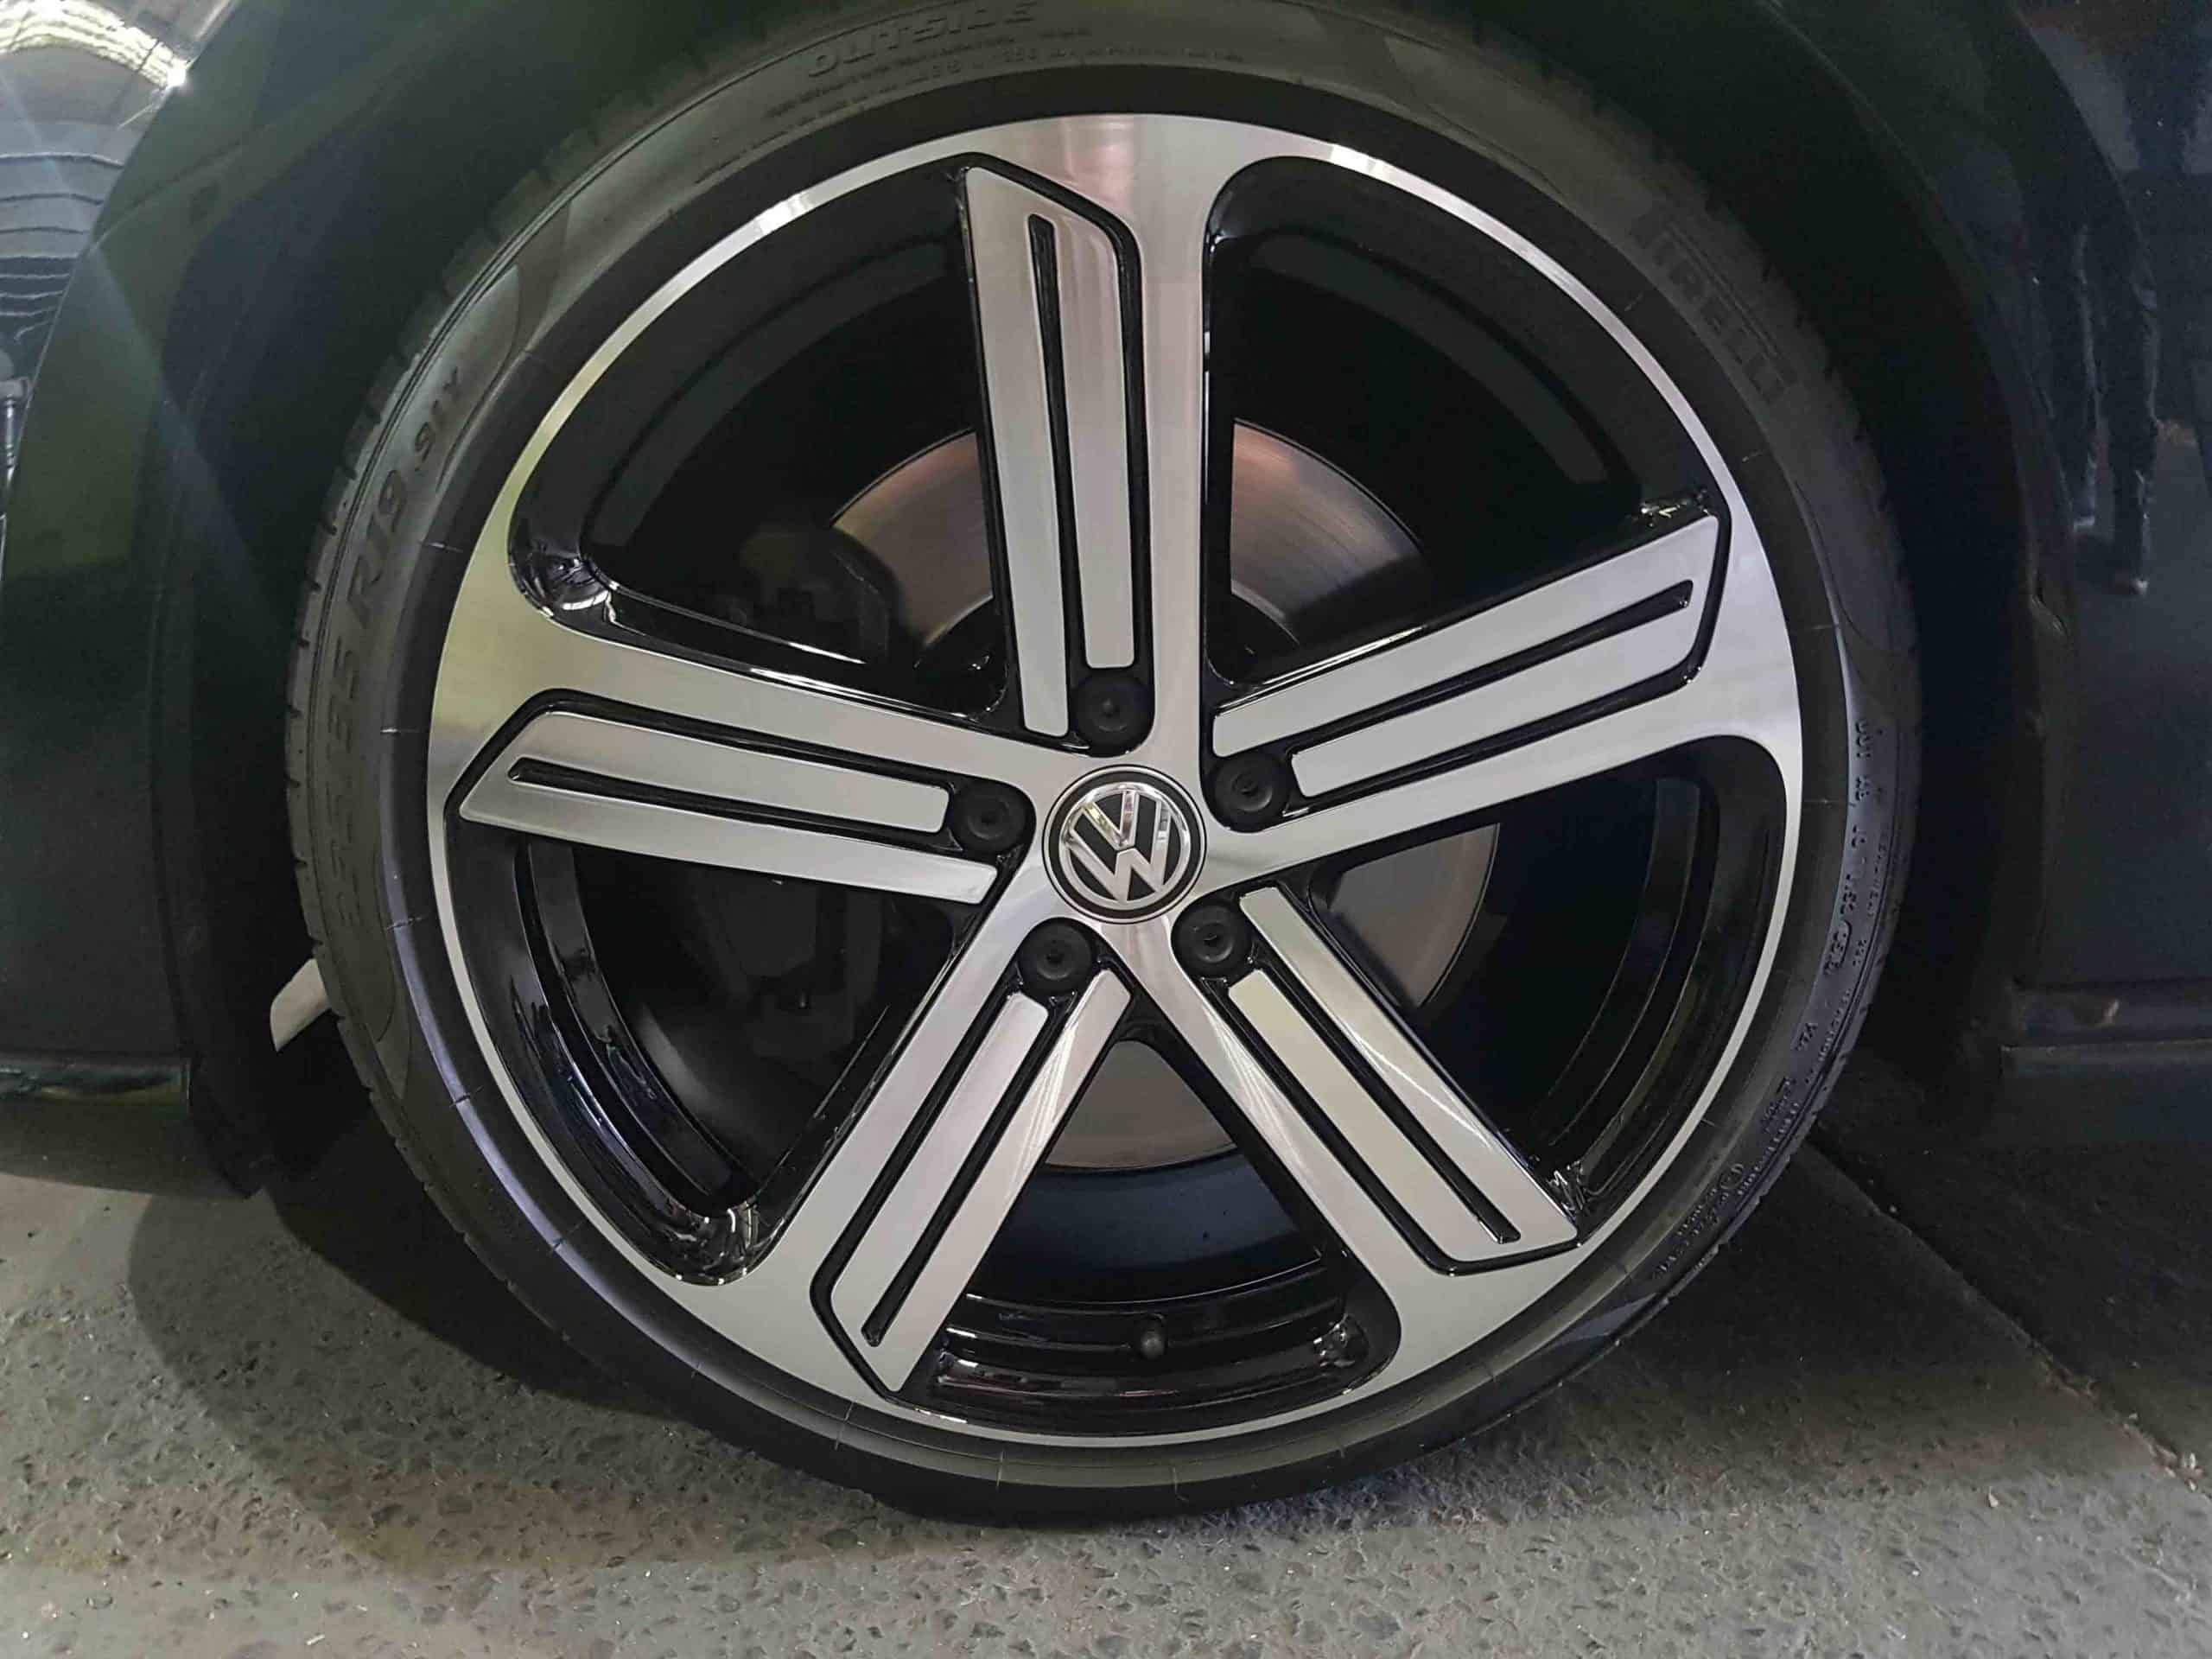 VW Golf GTI wheel repair after